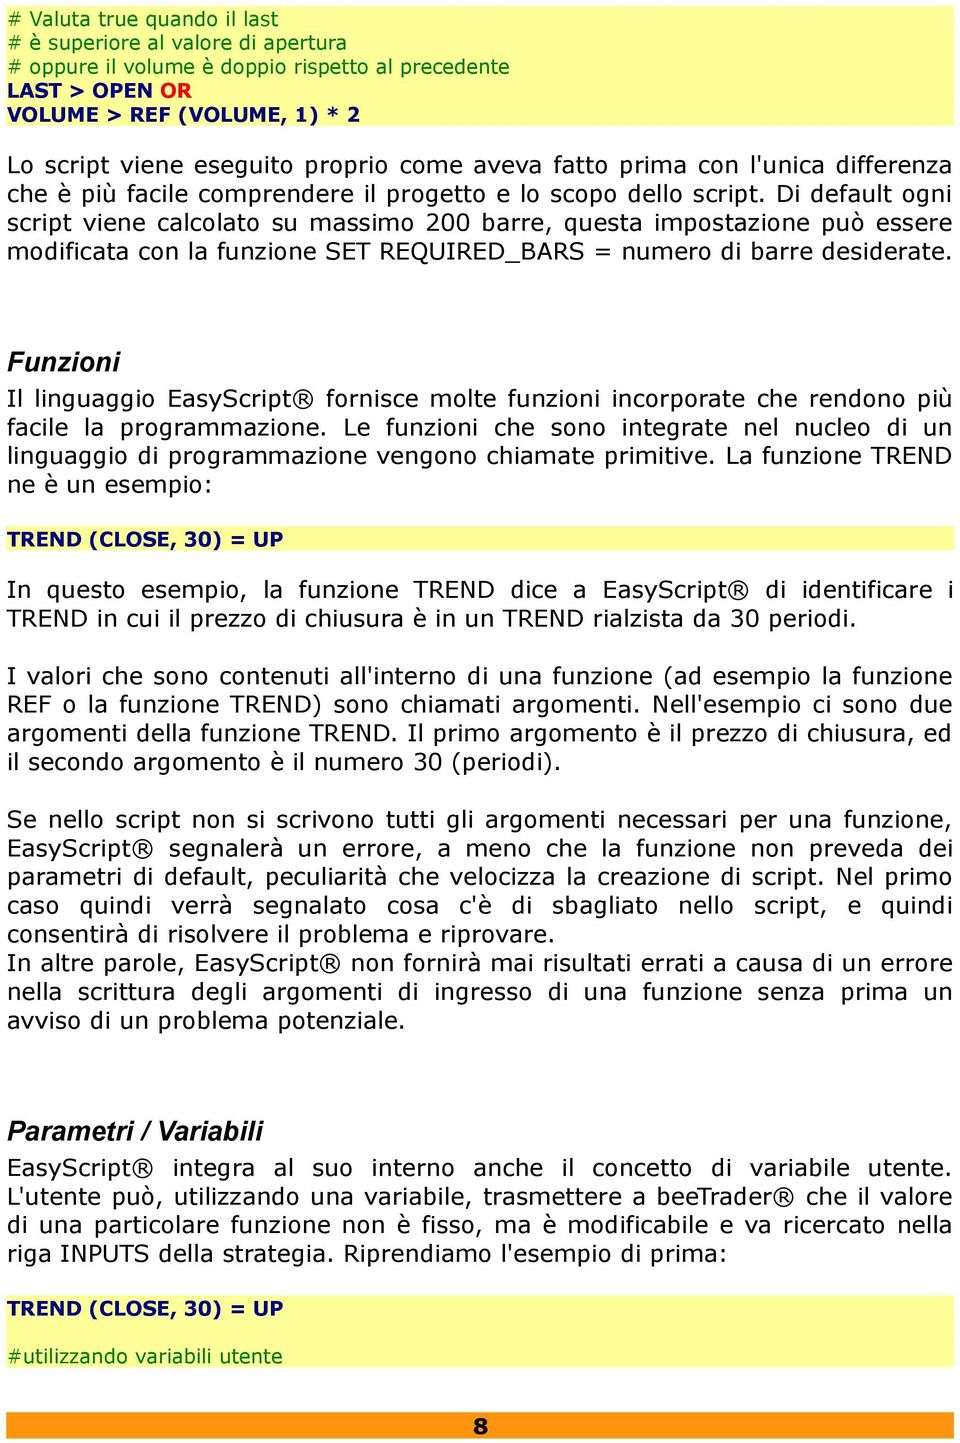 Di default ogni script viene calcolato su massimo 200 barre, questa impostazione può essere modificata con la funzione SET REQUIRED_BARS = numero di barre desiderate.